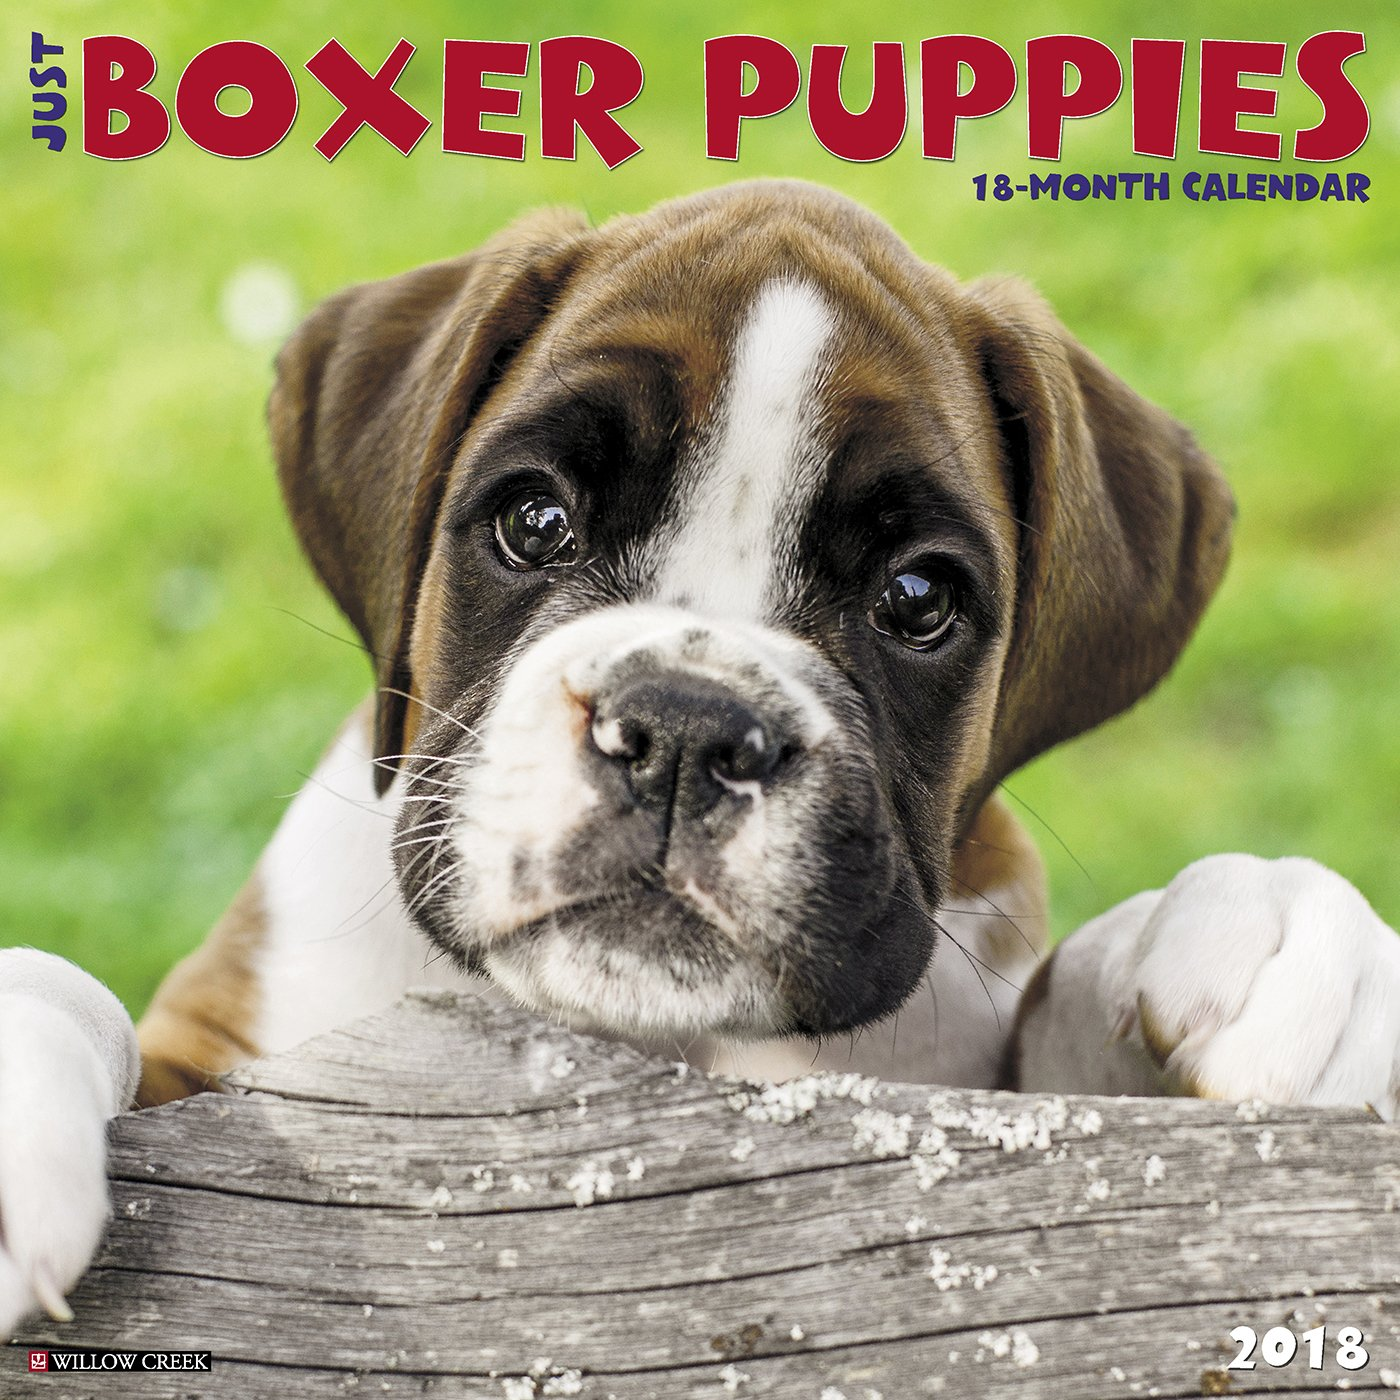 Just Boxer Puppies 2018 Calendar Willow Creek Press 9781682344248